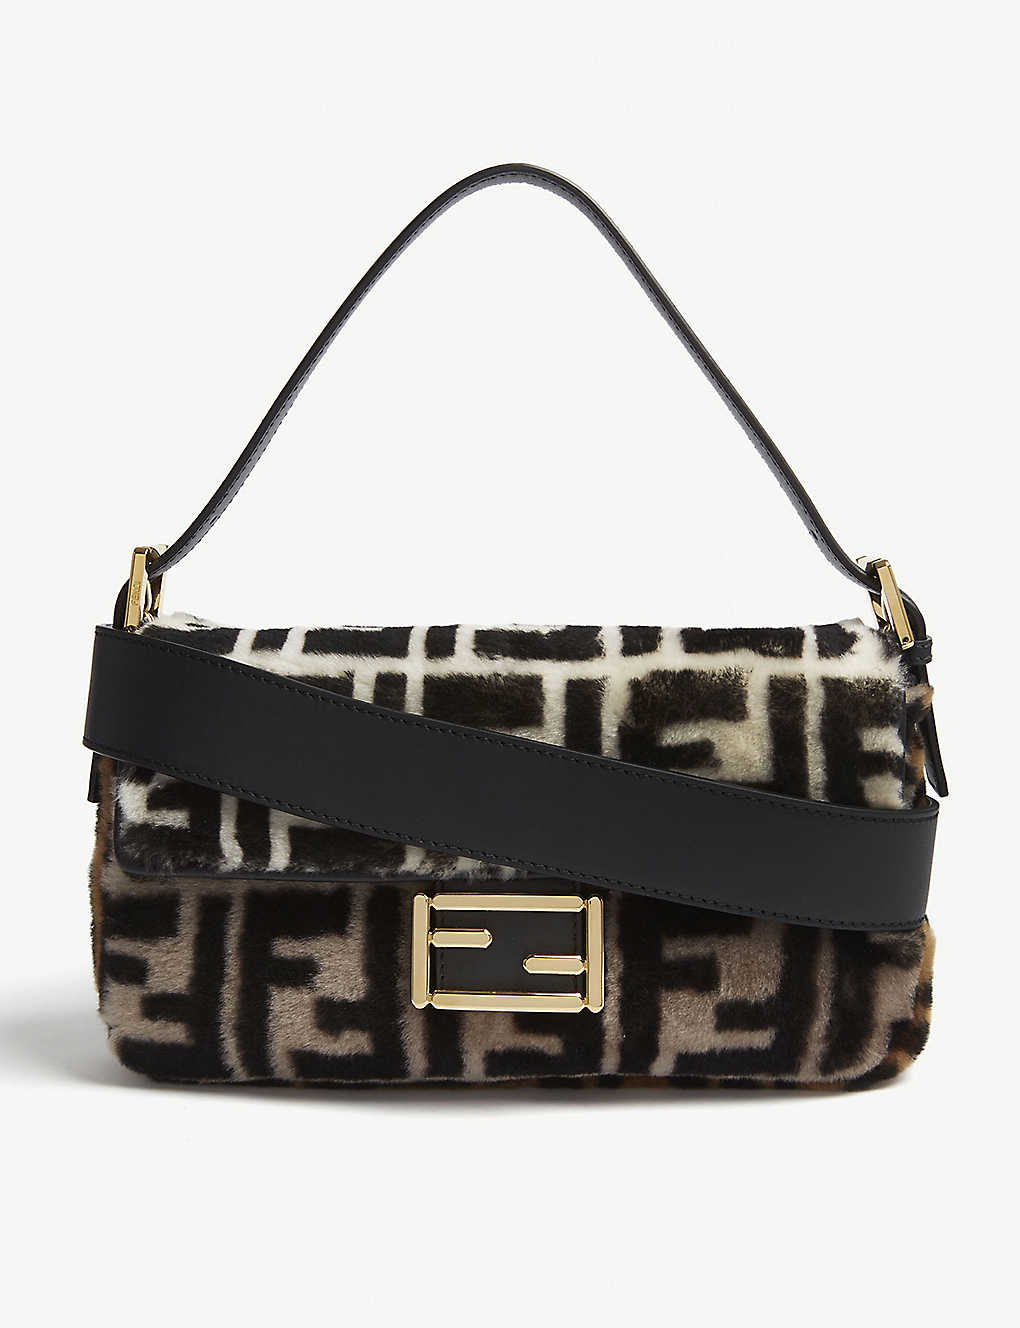 FENDI - Logo shearling baguette shoulder bag  60154734ba4ac